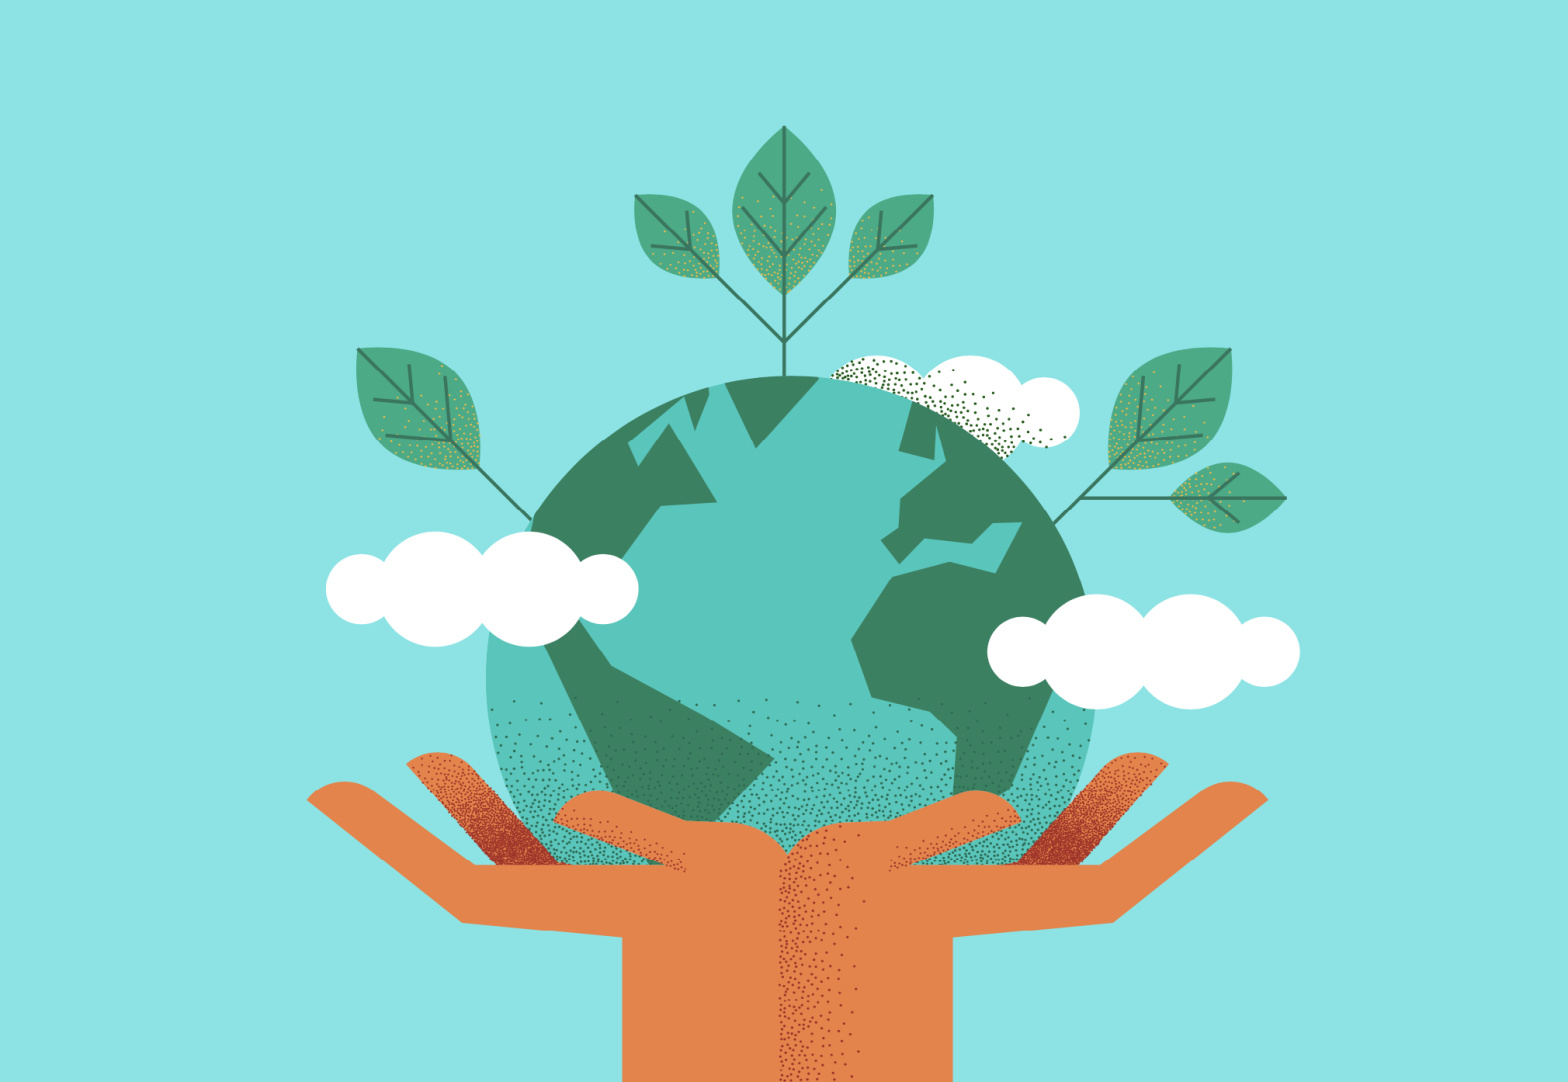 Cartoon of hands holding Earth